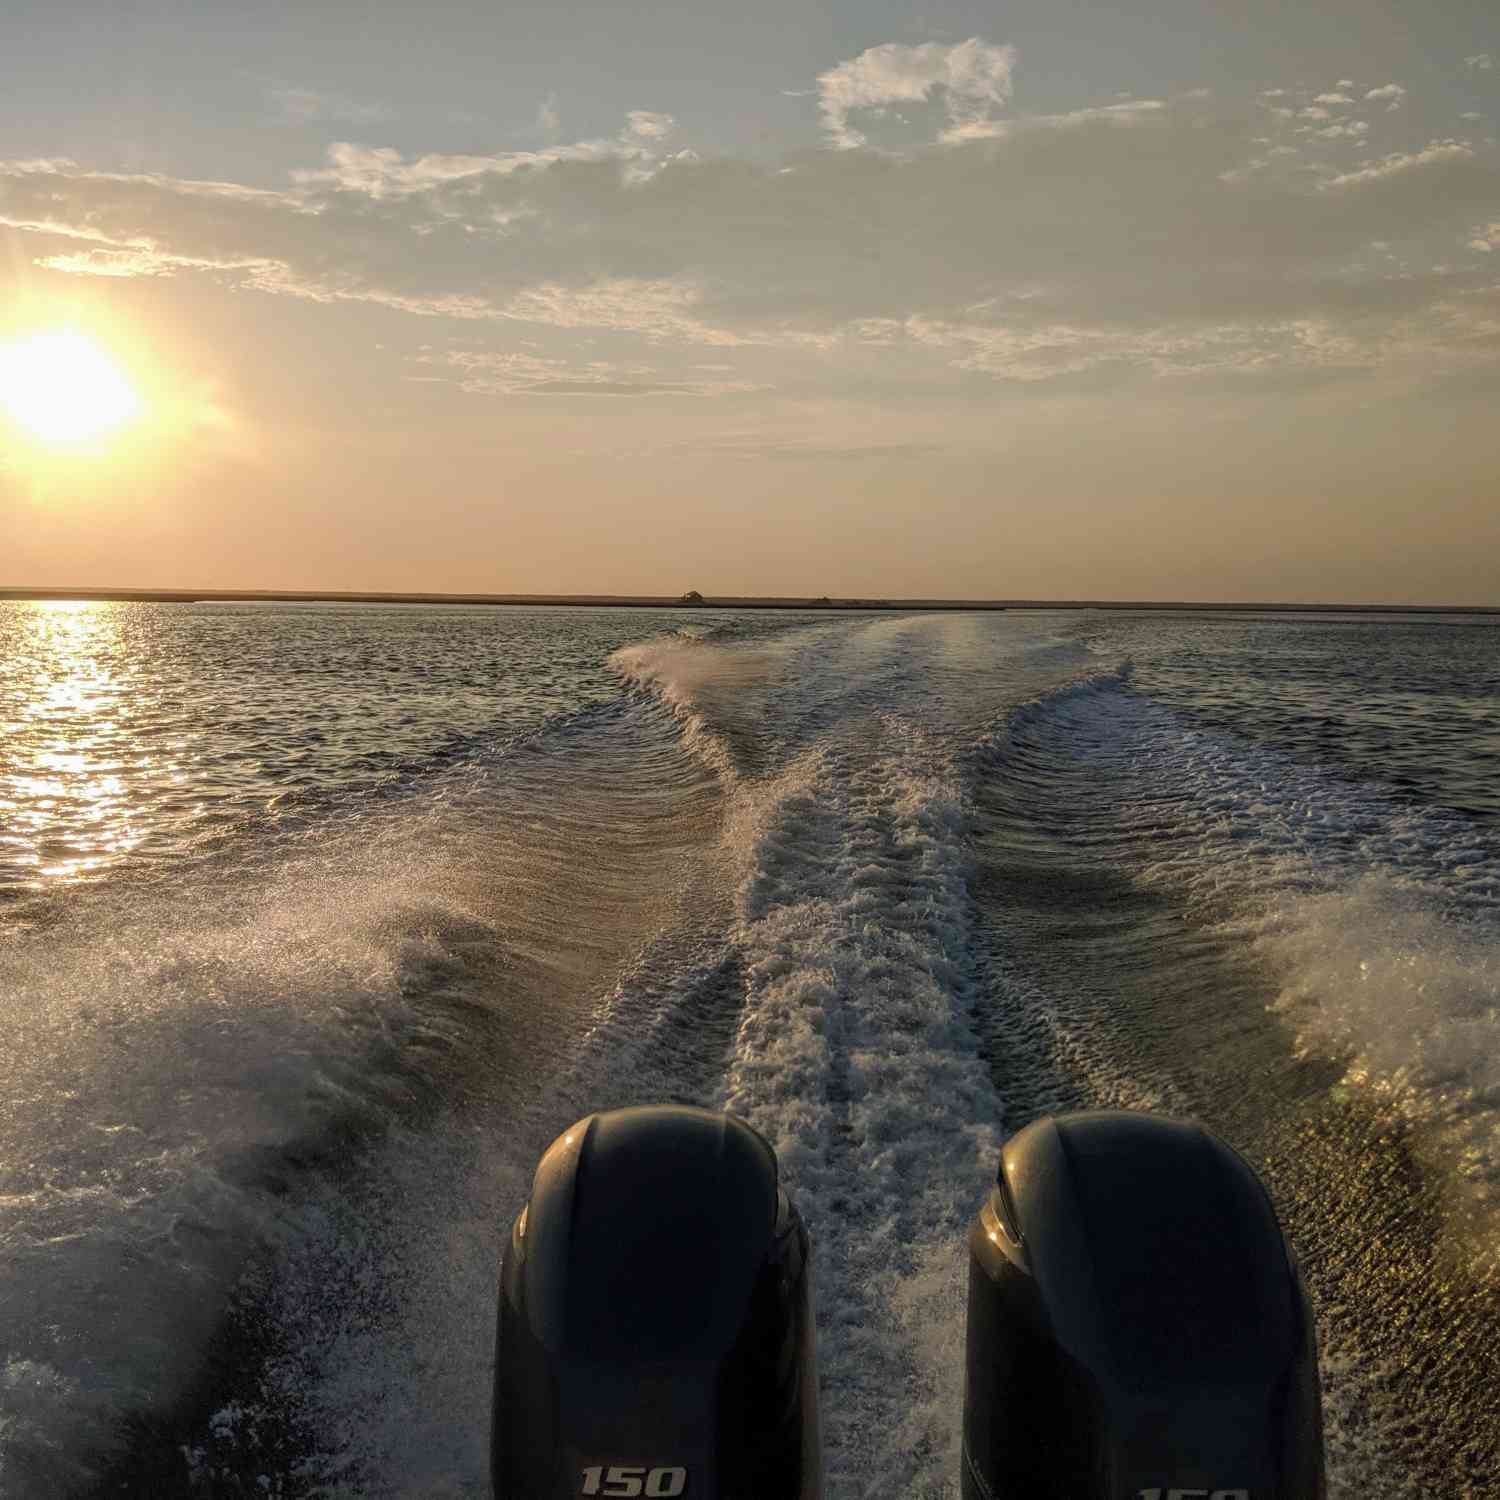 Title: Away From It All - On board their Sportsman Open 252 Center Console - Location: Somers Point NJ. Participating in the Photo Contest #SportsmanJuly2020